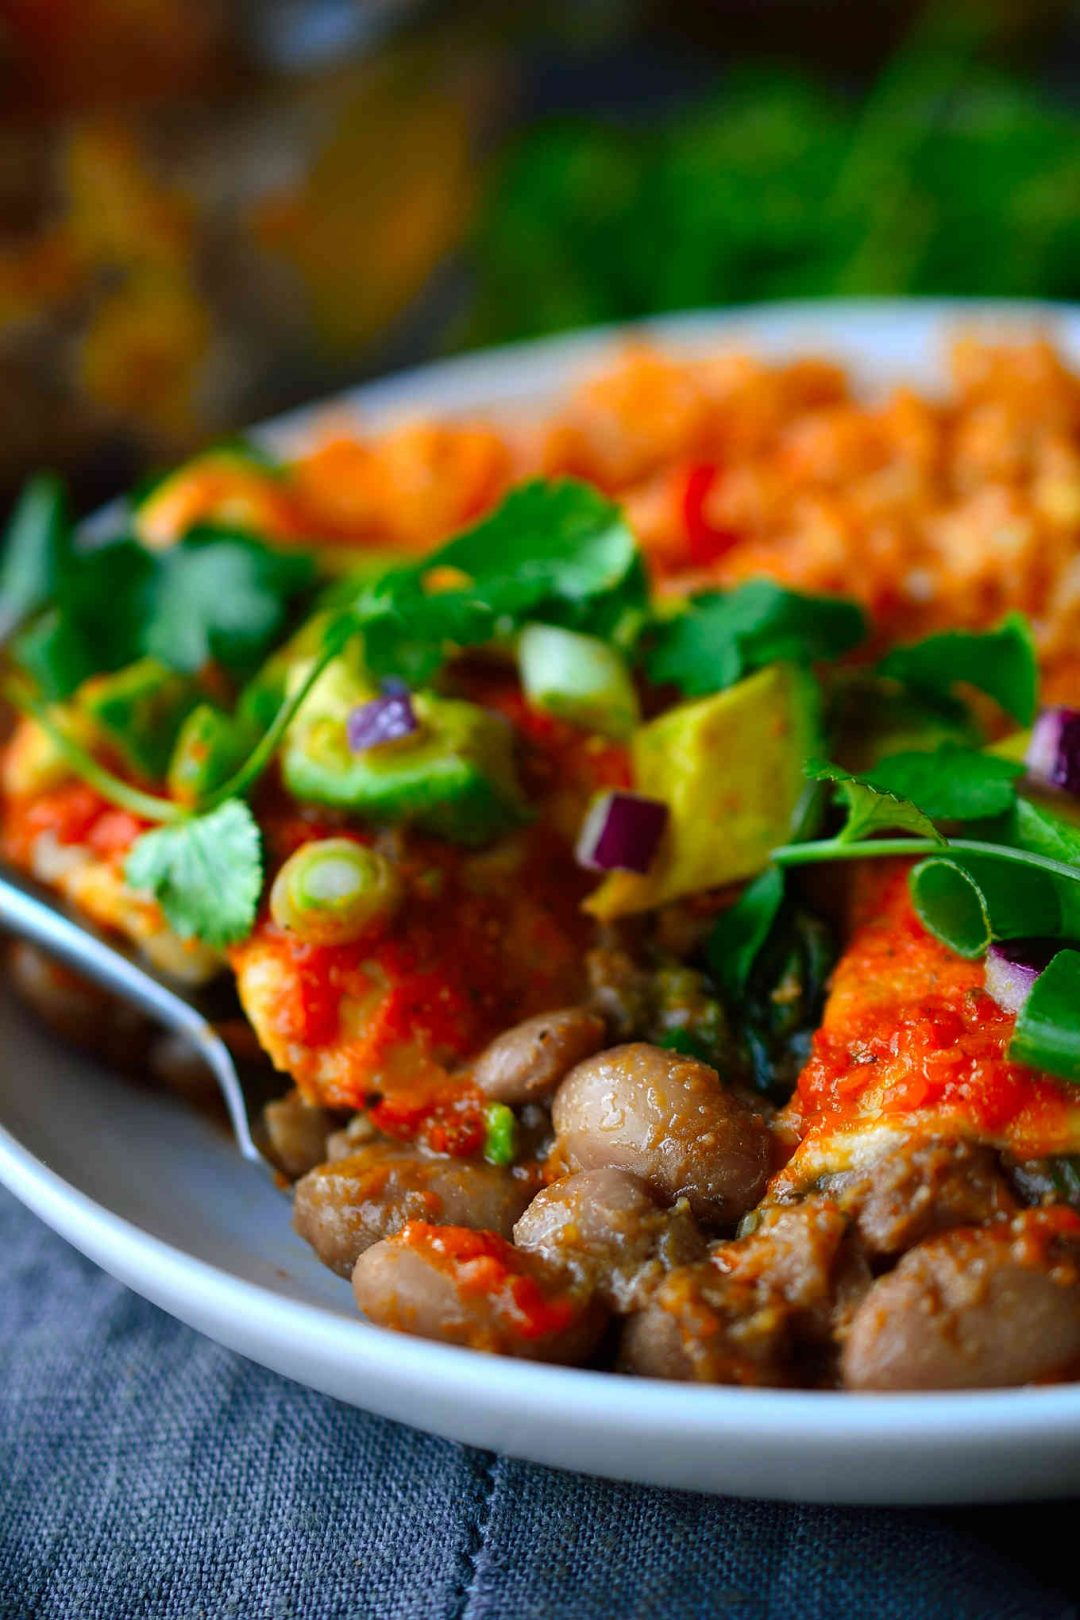 This recipe for pinto bean enchiladas is super hearty with a filling of slow-cooked smoky and spicy pinto beans and spinach, a quick and easy homemade enchilada sauce and topped with creamy avocado, sweet red onion and fresh cilantro. And in case you didn't notice, these enchiladas are totally vegan, too!